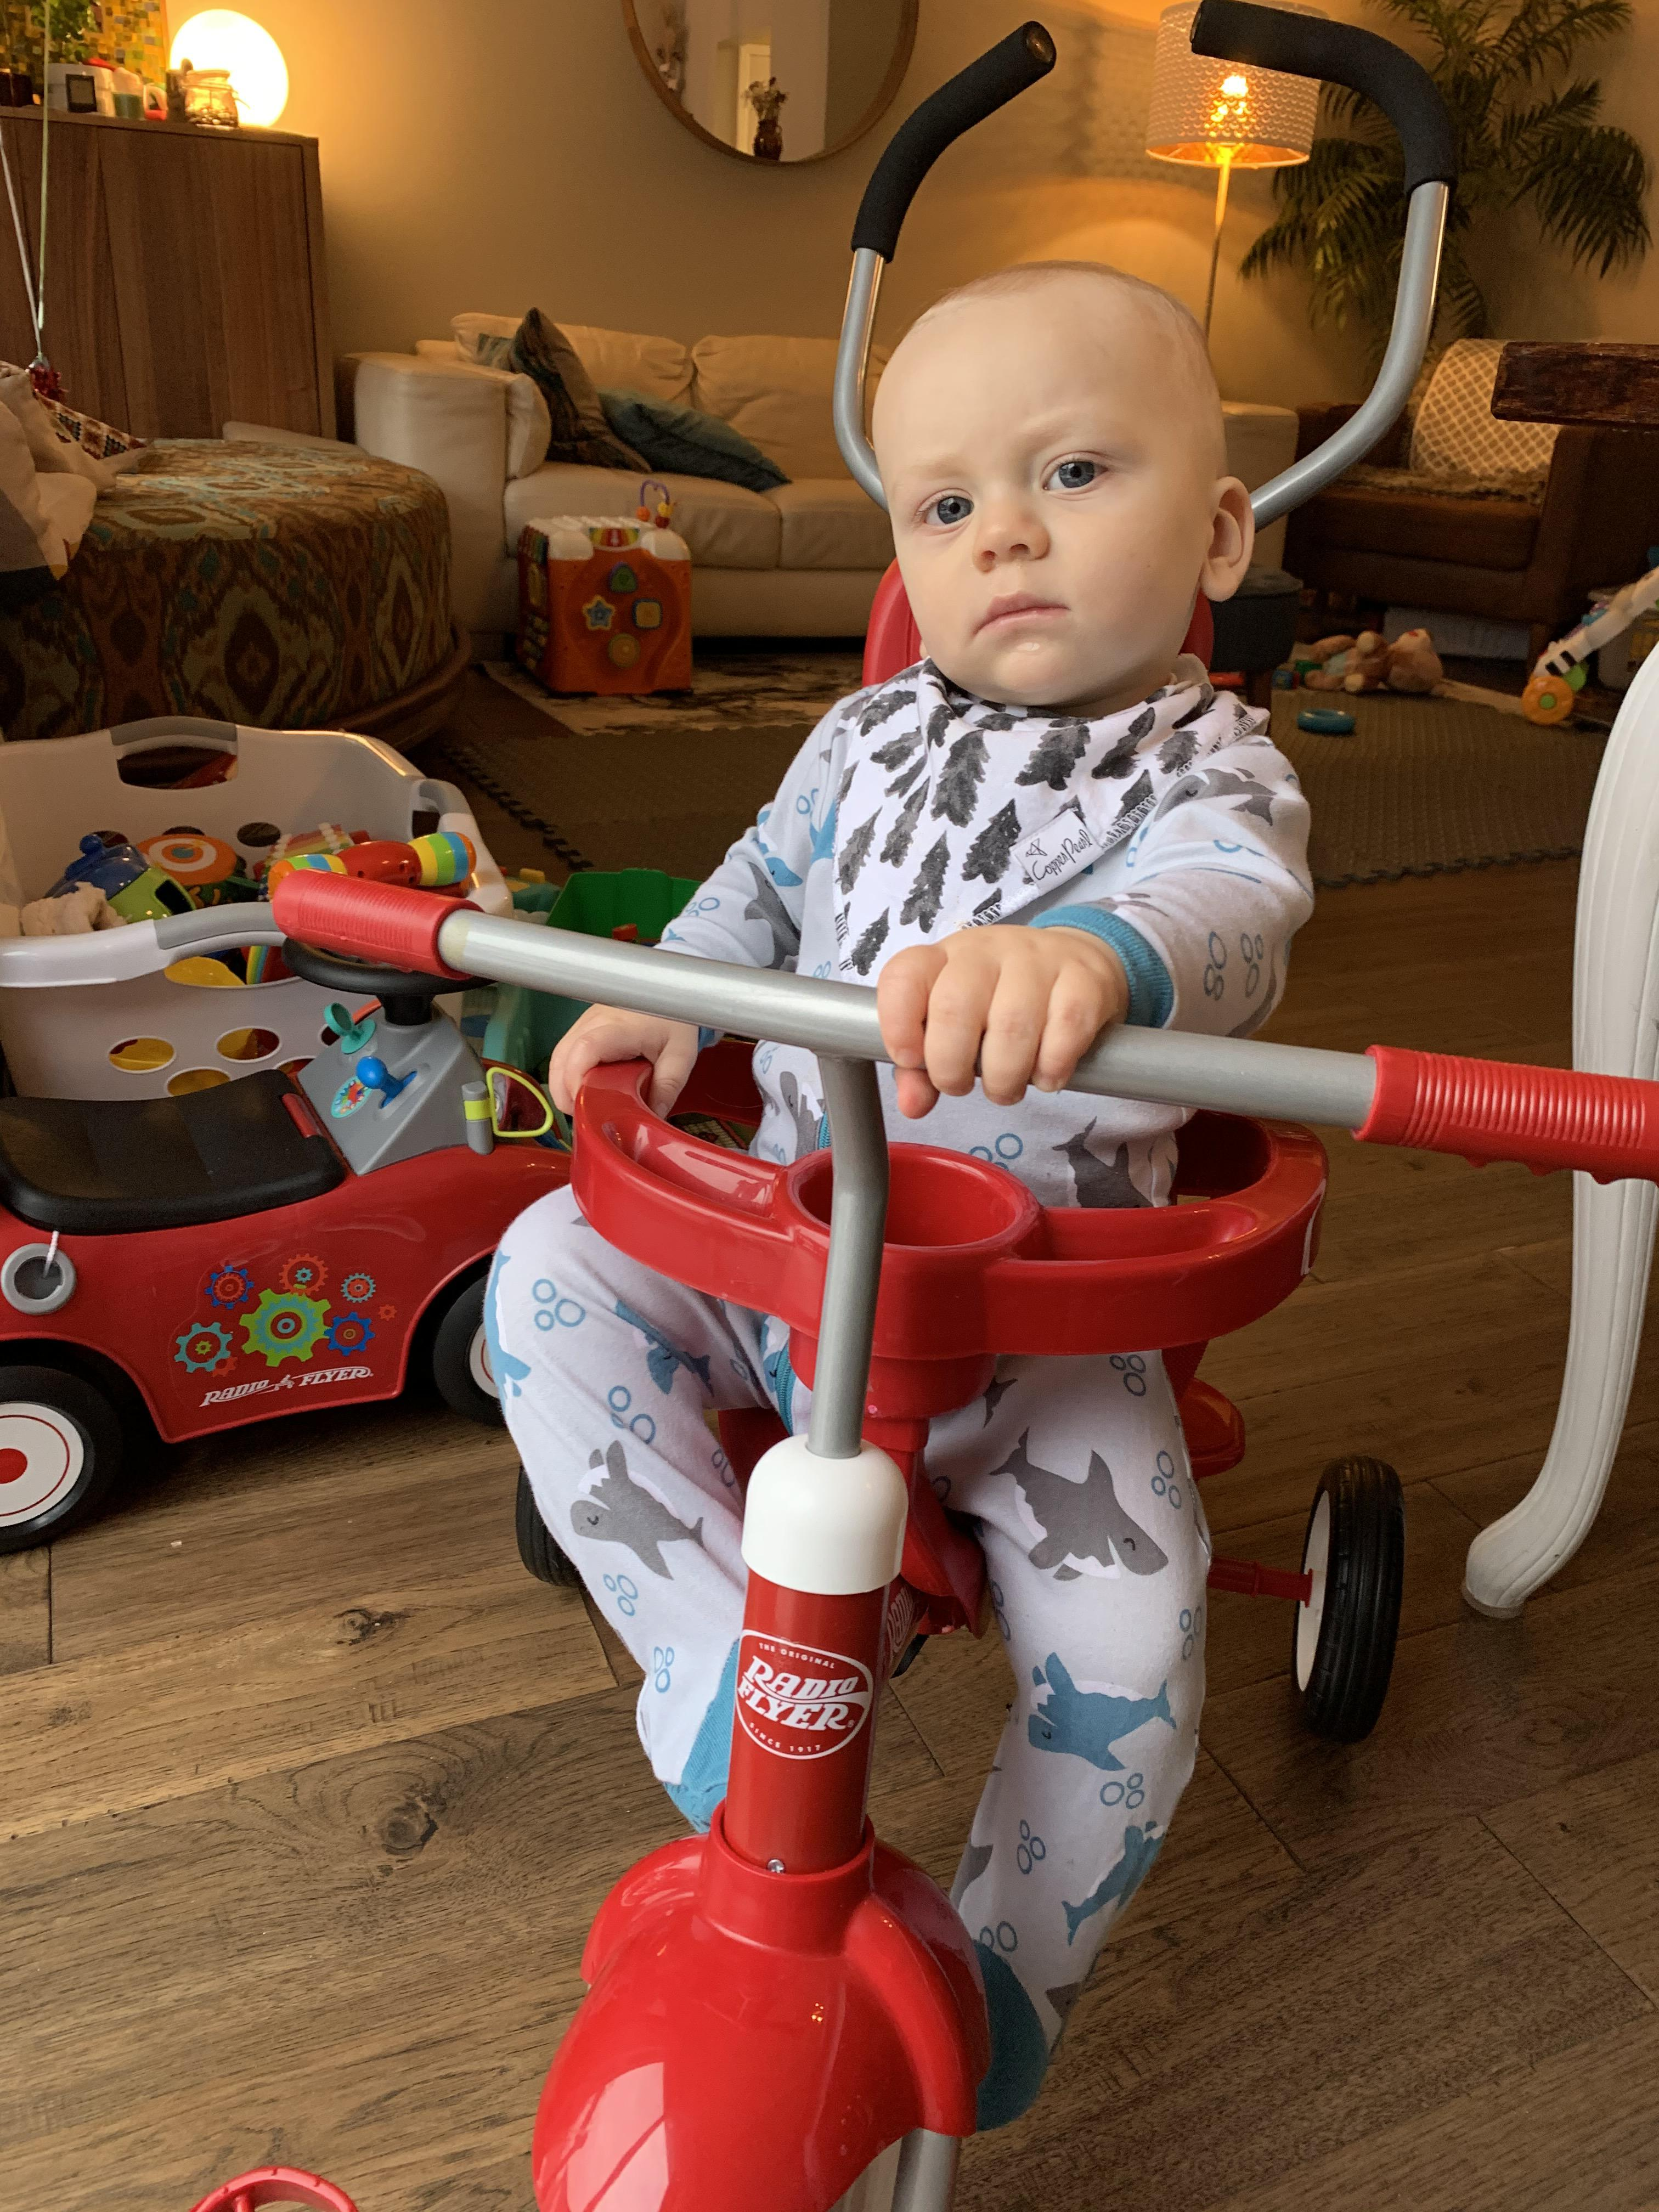 Managed to take a picture of my 1 year old looking more badass on his trike than I ever have